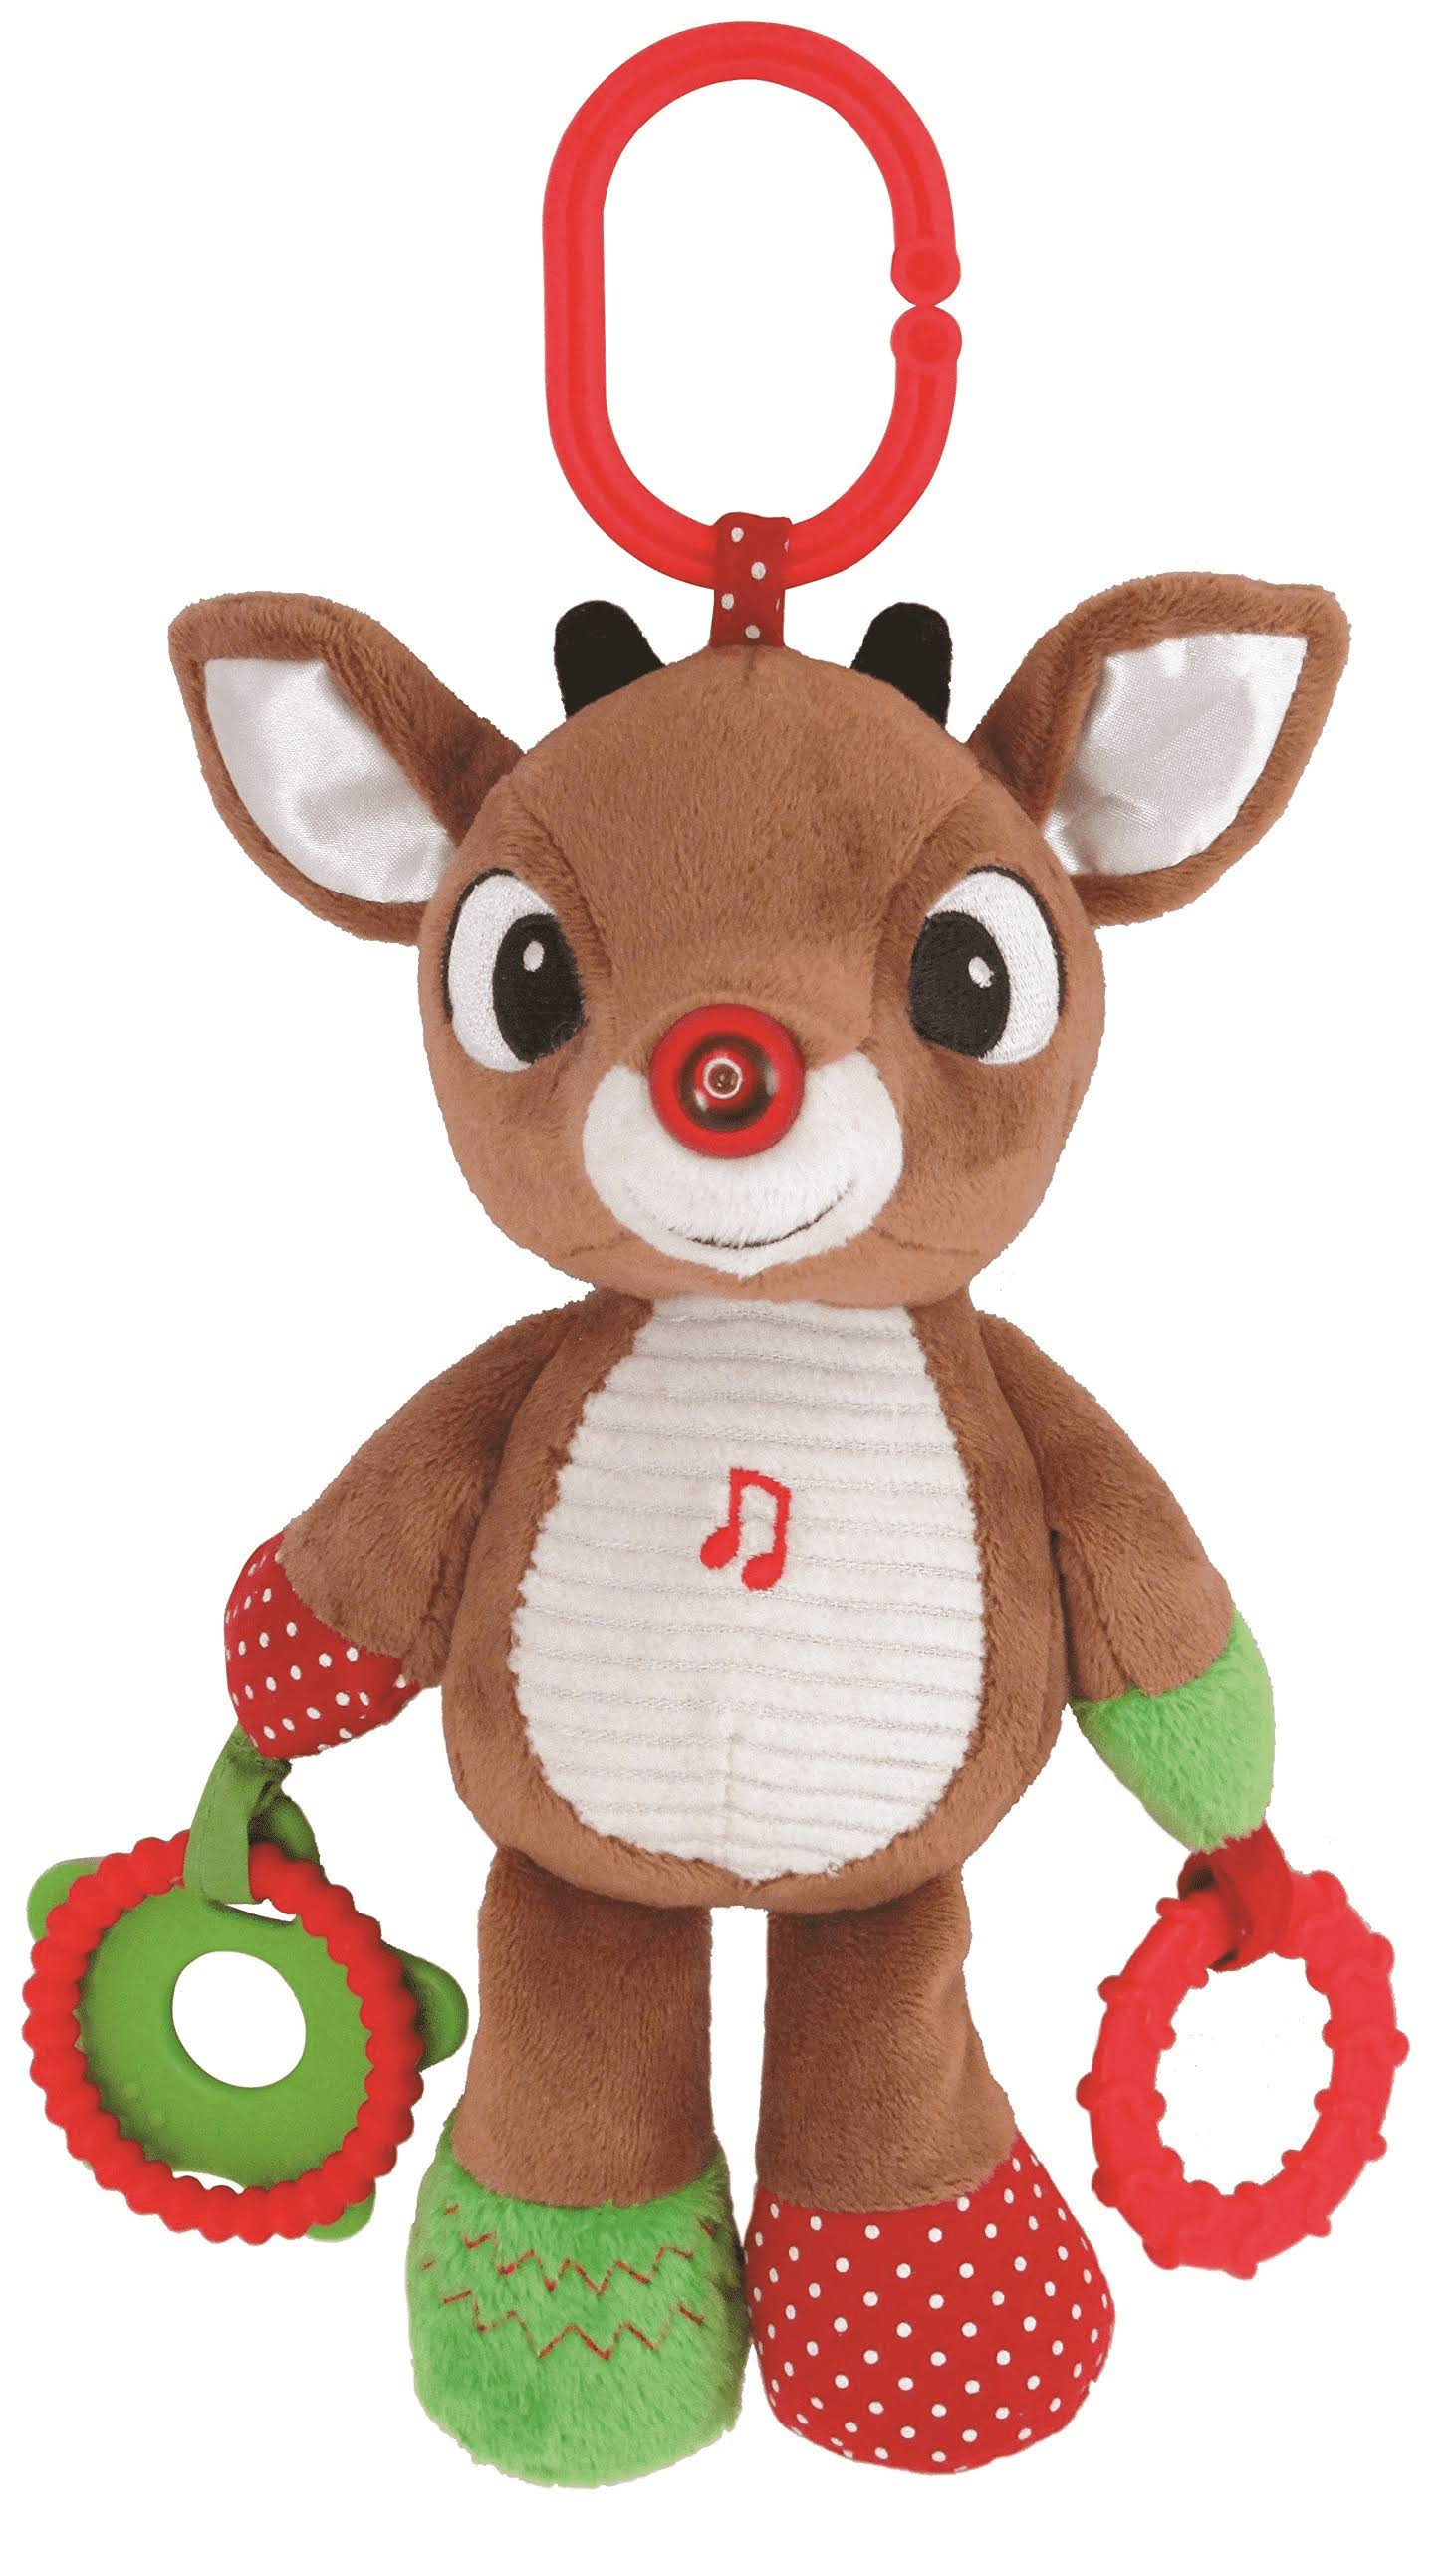 Rudolph The Red Nosed Reindeer Plush Musical Light Up Activity Toy